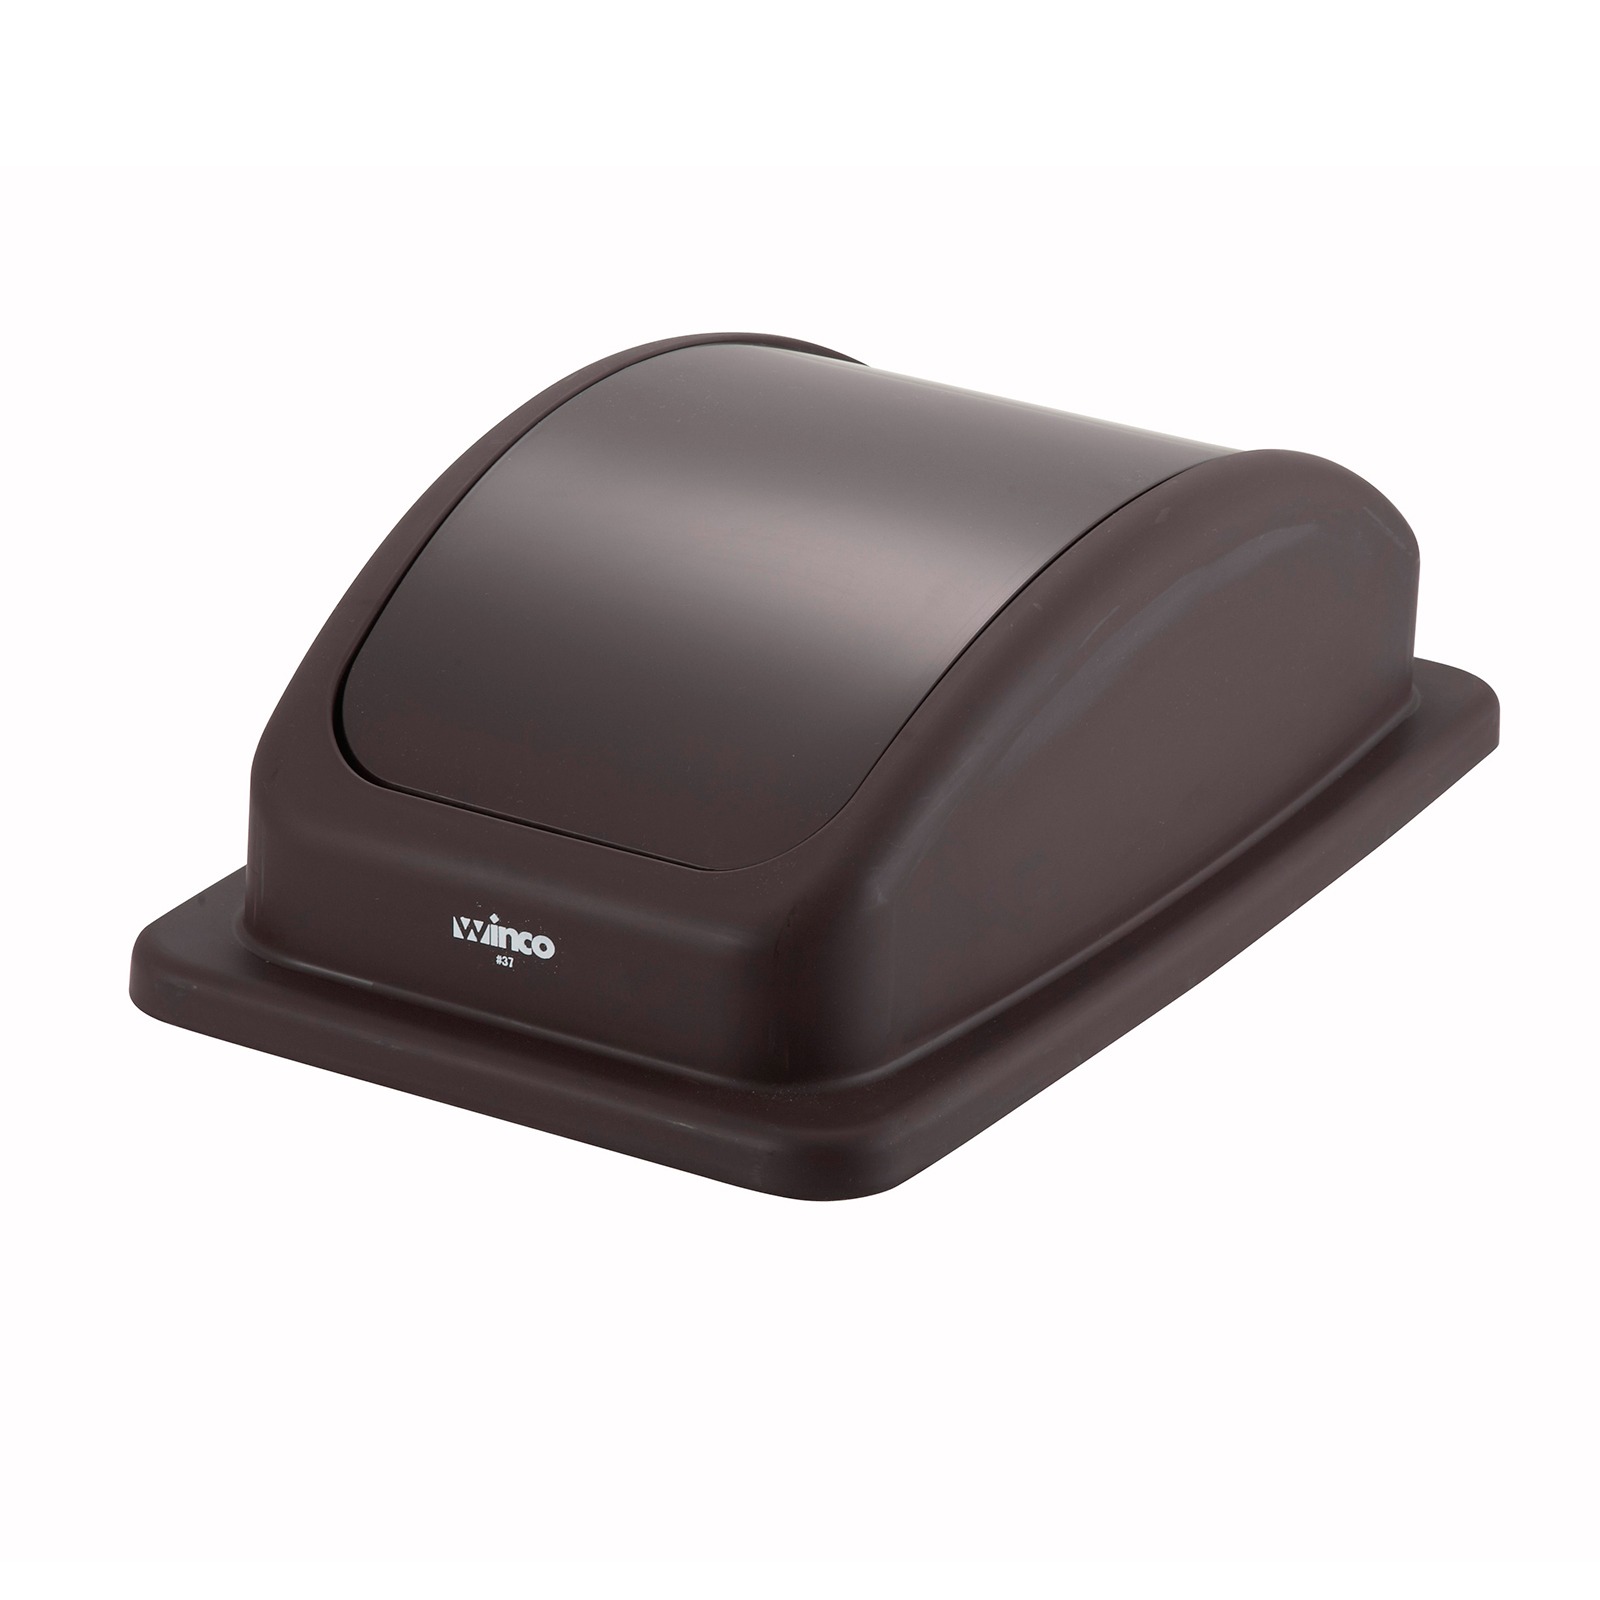 Winco PTCL-23B trash receptacle lid / top